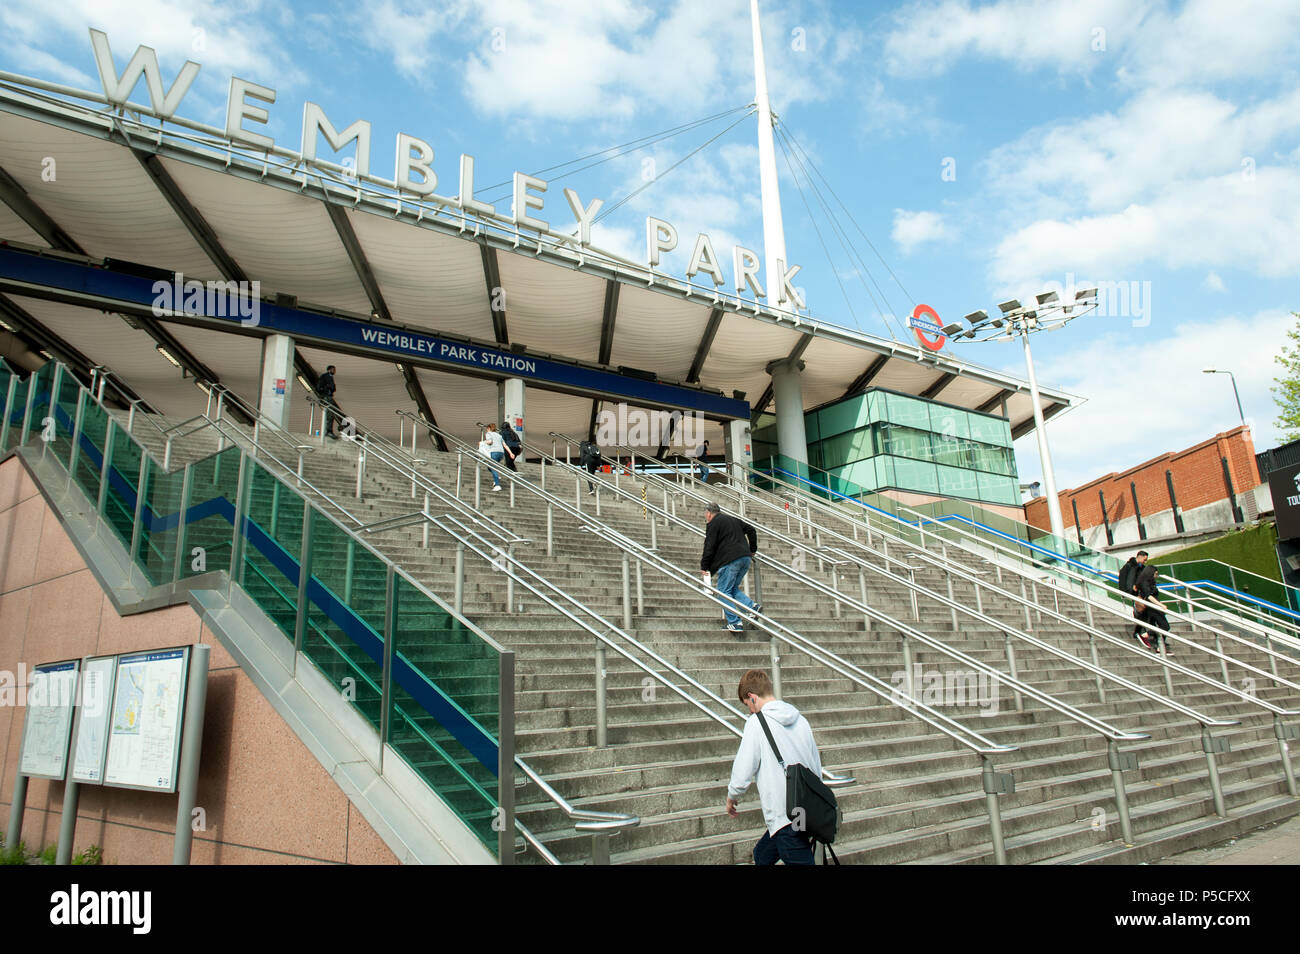 Steps from Wembley Park station leading to stadium - Stock Image